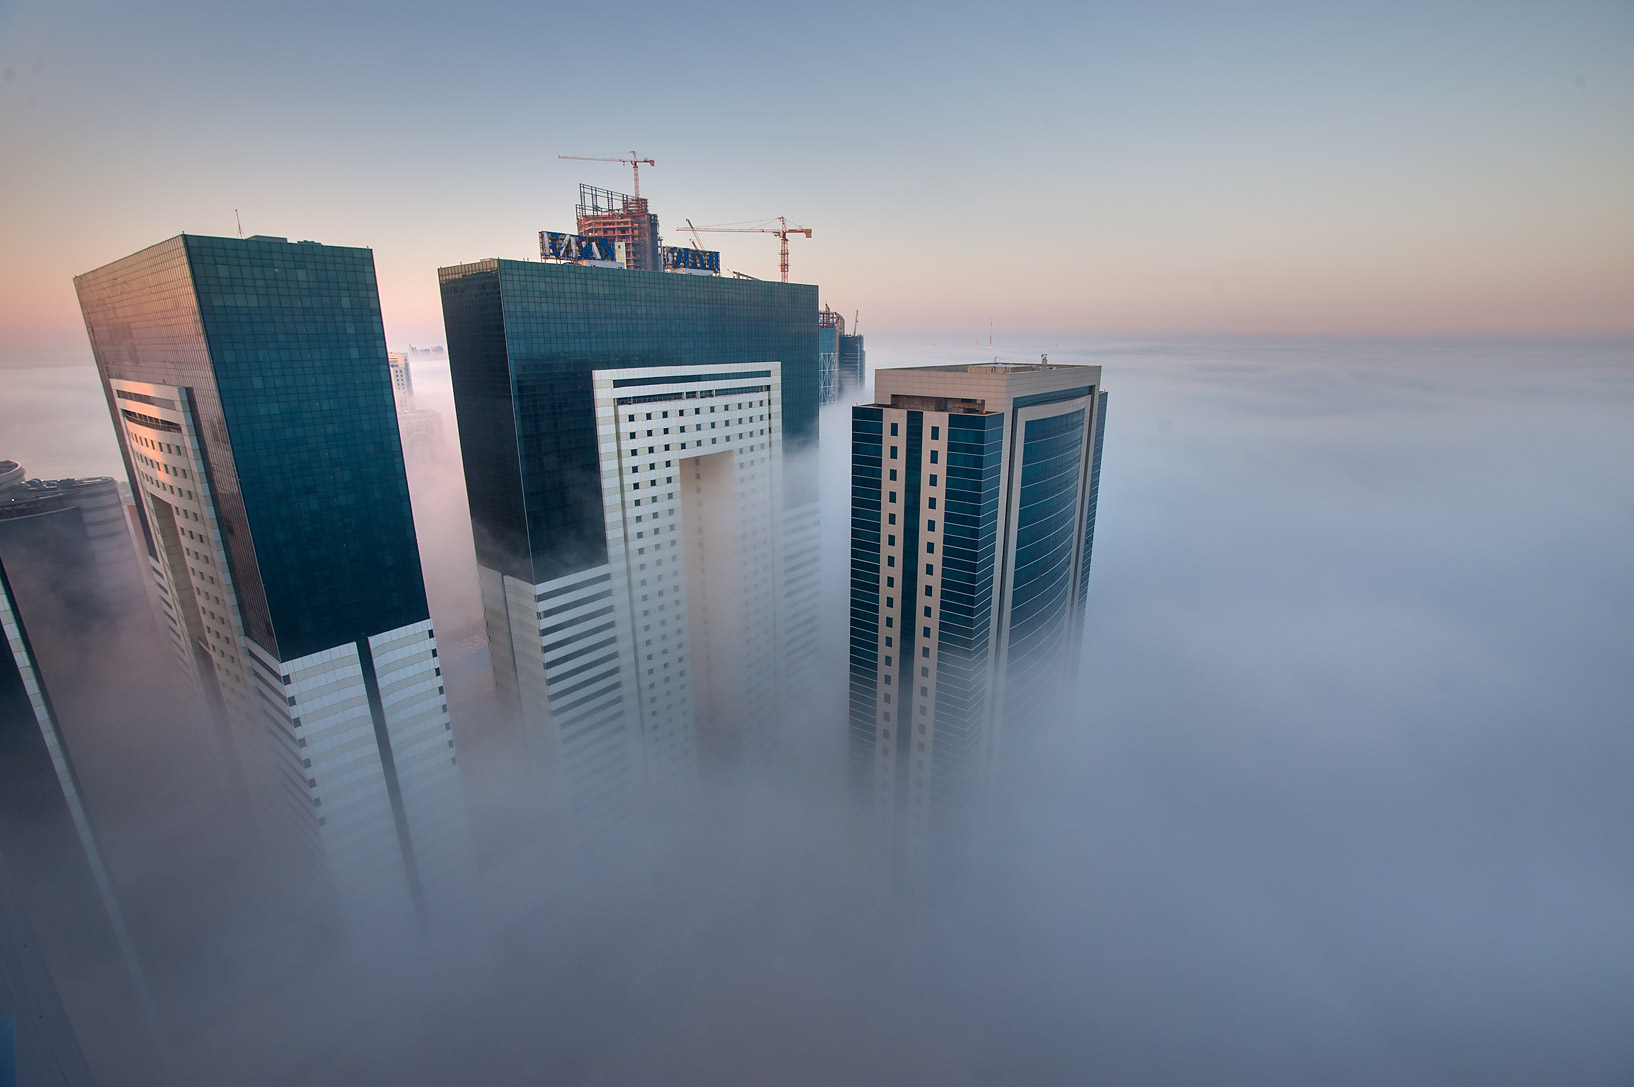 Ezdan Hotel in fog to the east from a balcony of...Dareen Tower in West Bay. Doha, Qatar